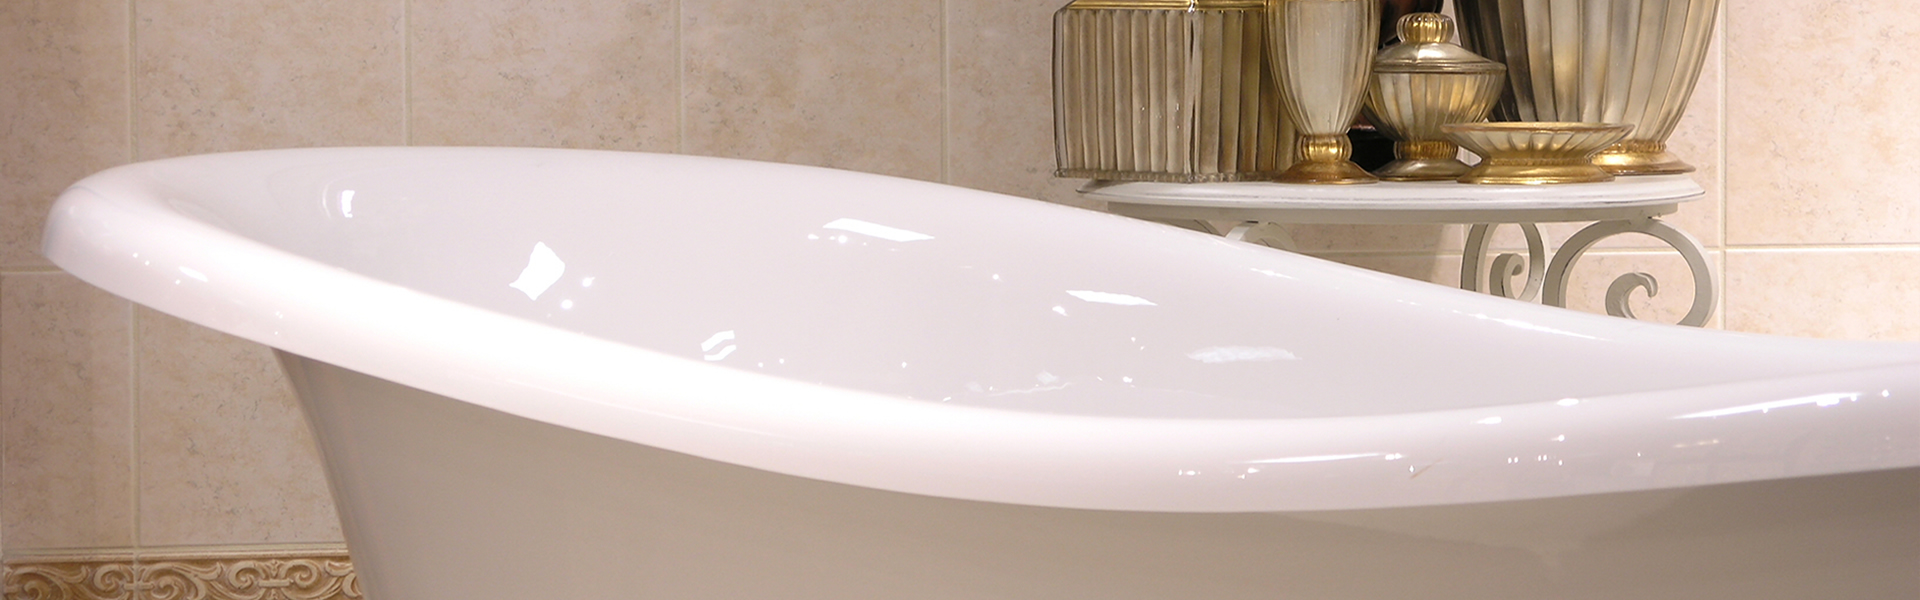 BATHTUB REFINISHING IN ATLANTA GEORGIA CULTURED AND LAMINATE FORMICA AFFORDABLE CABINETS AND